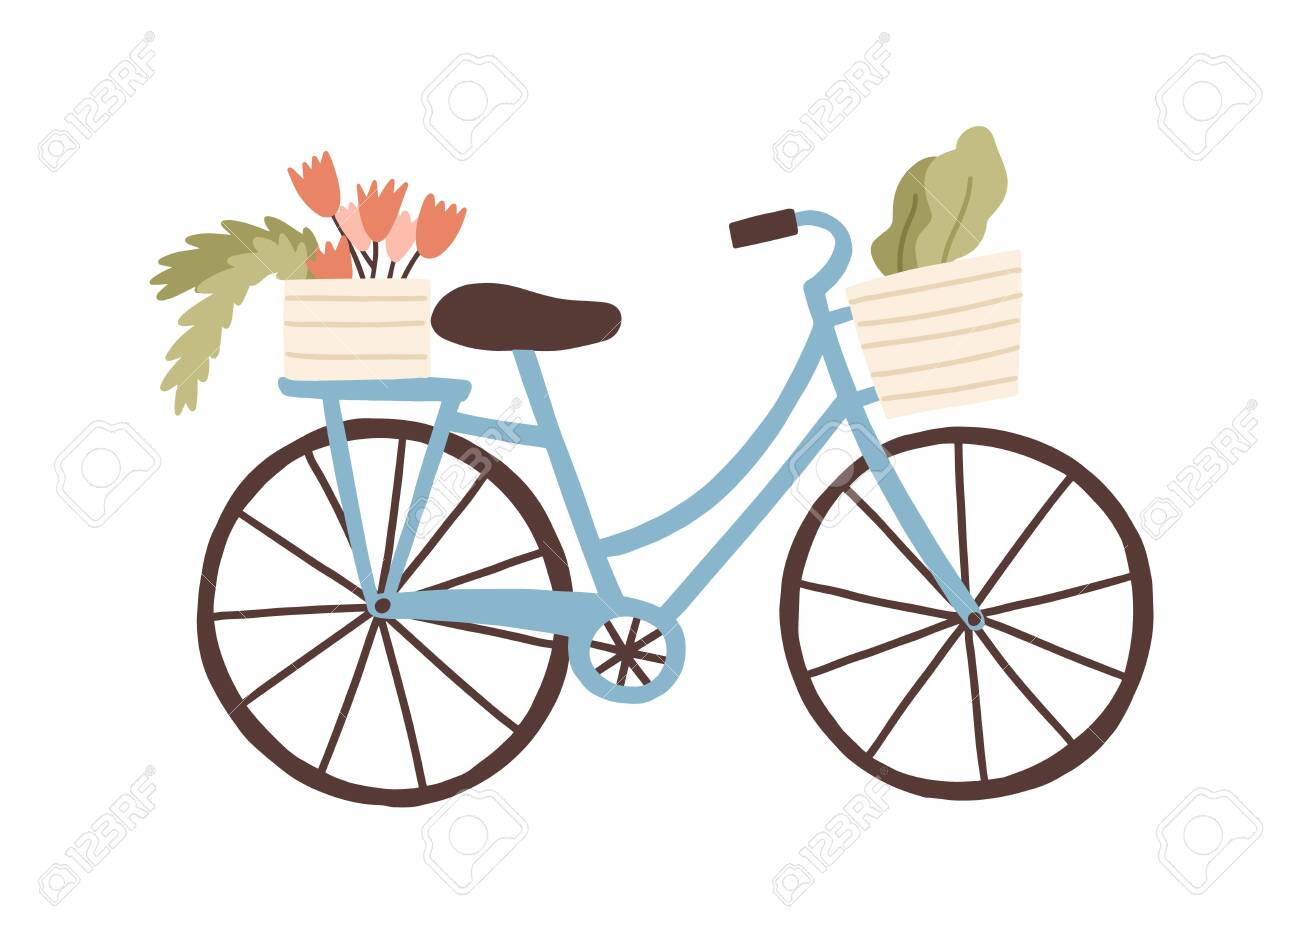 Cute hand drawn bicycle or bike isolated on white background. Urban eco friendly pedal transport carrying baskets with flowers and plants vector flat illustration. Retro vehicle with flower bouquet. - 151514102